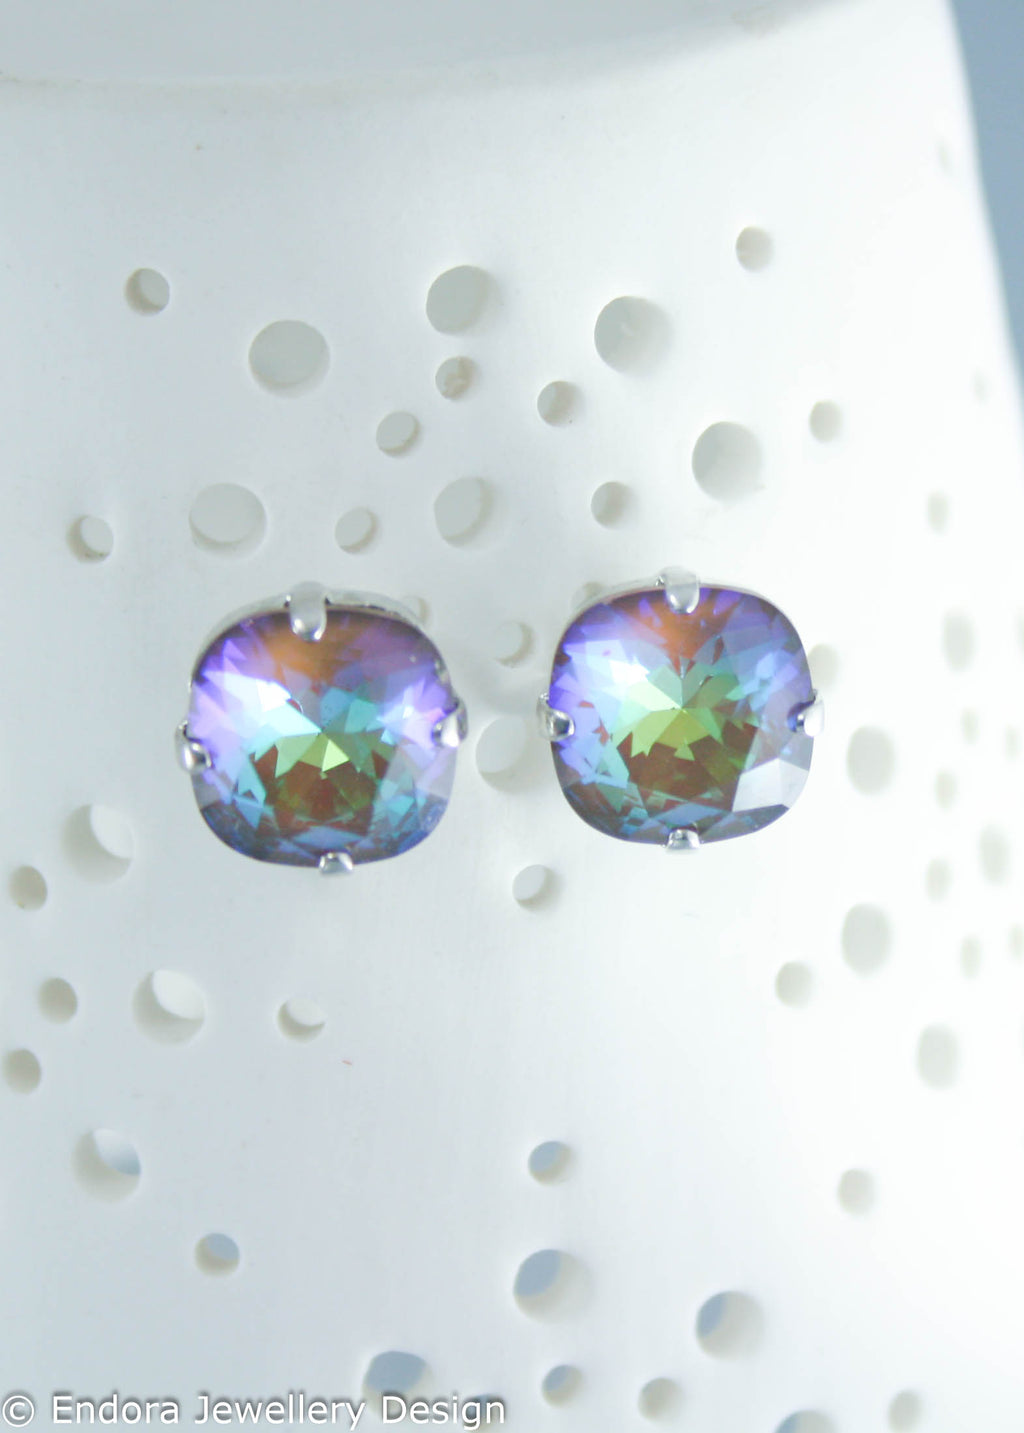 Swarovski limited edition 10mm cushion cut earrings Cocoa